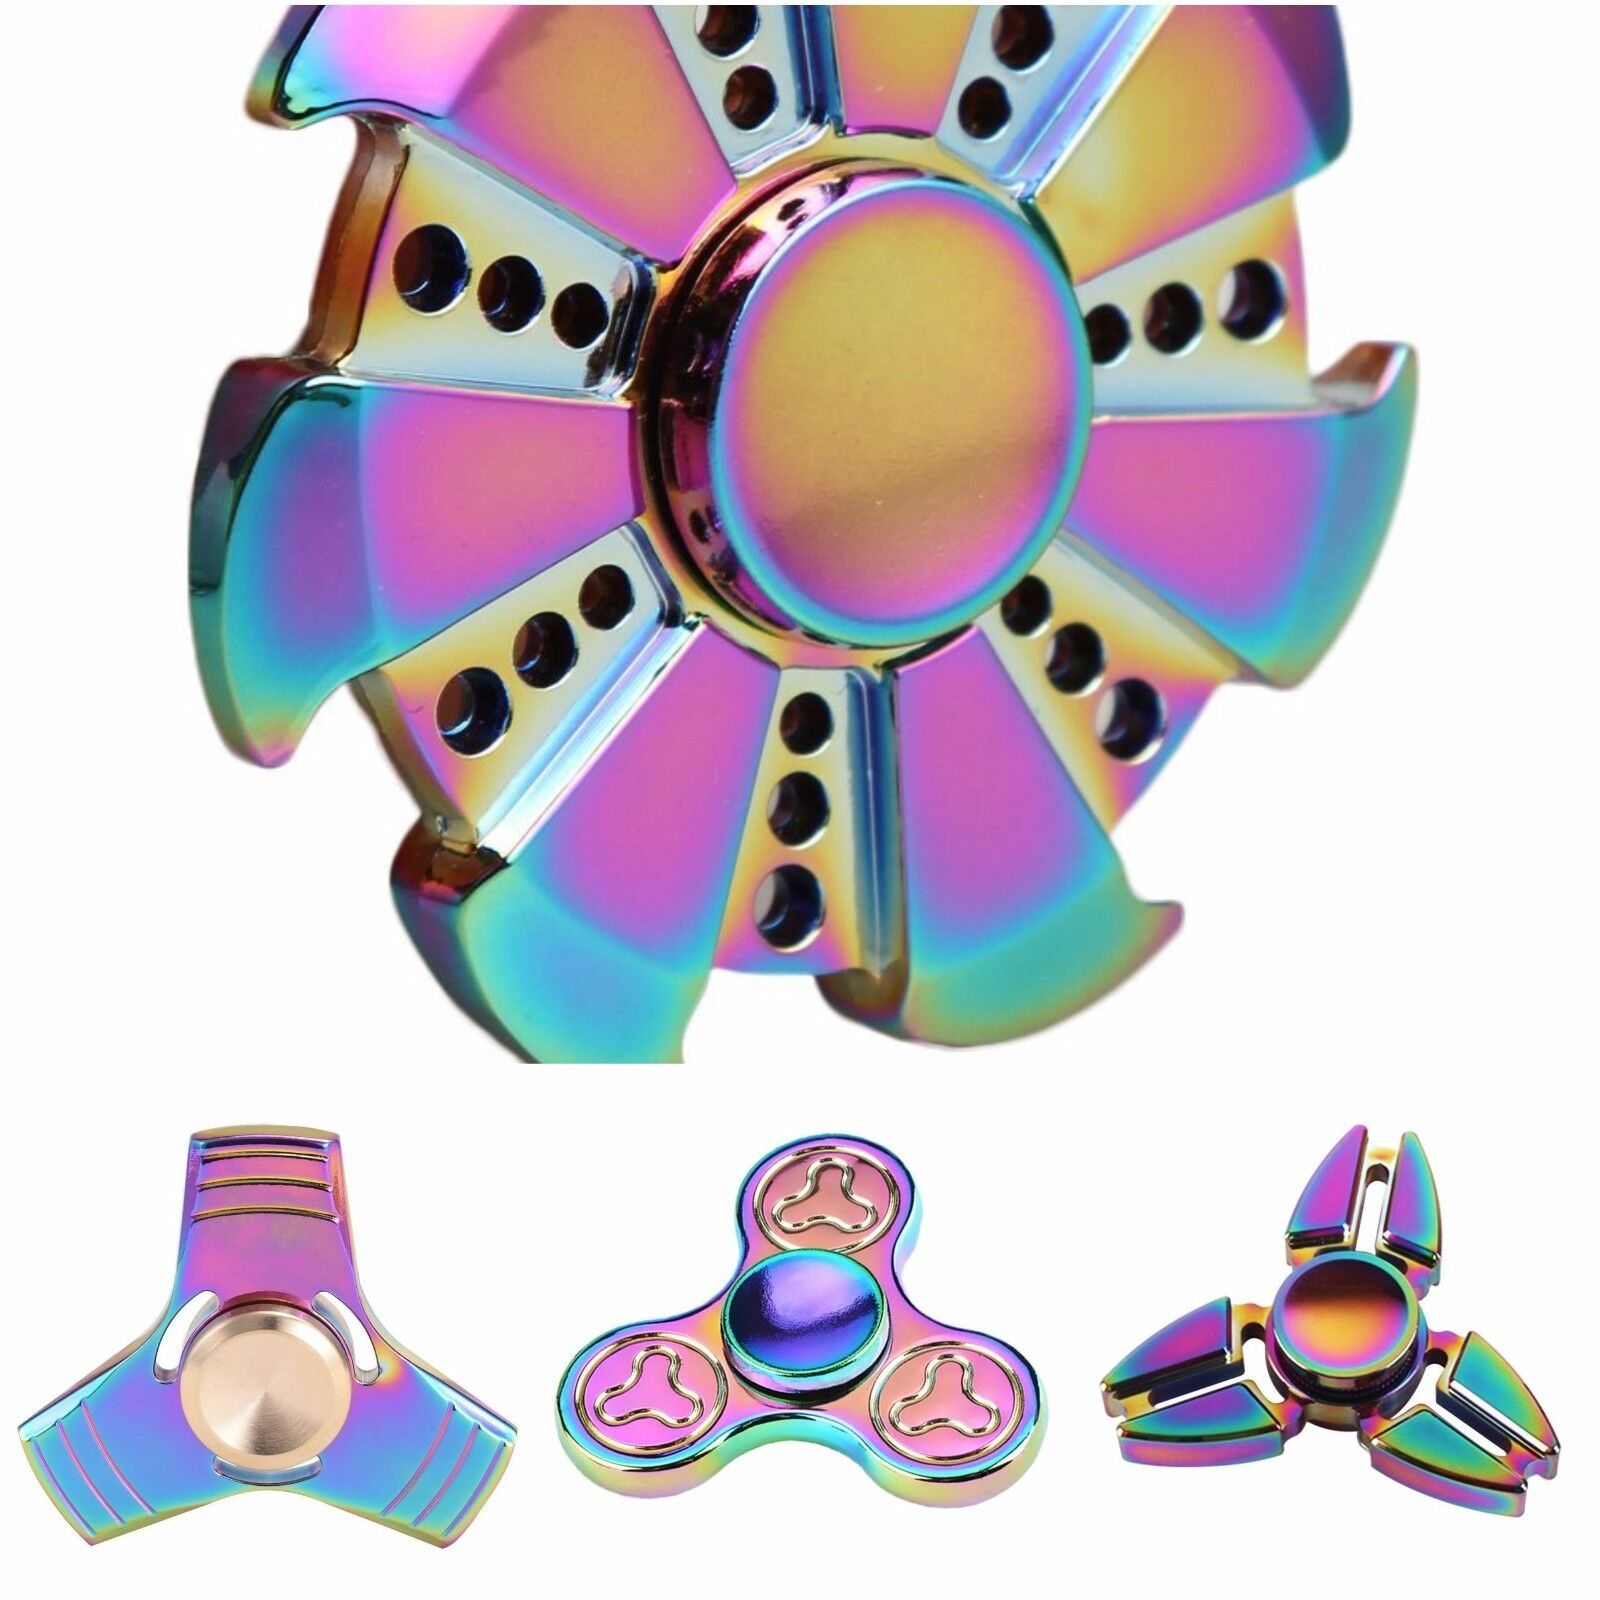 JOBLOT Wholesale intranquilo Spinner Mano Dedo Bar ADHD Enfoque De Mesa De Bolsillo Lote De 10